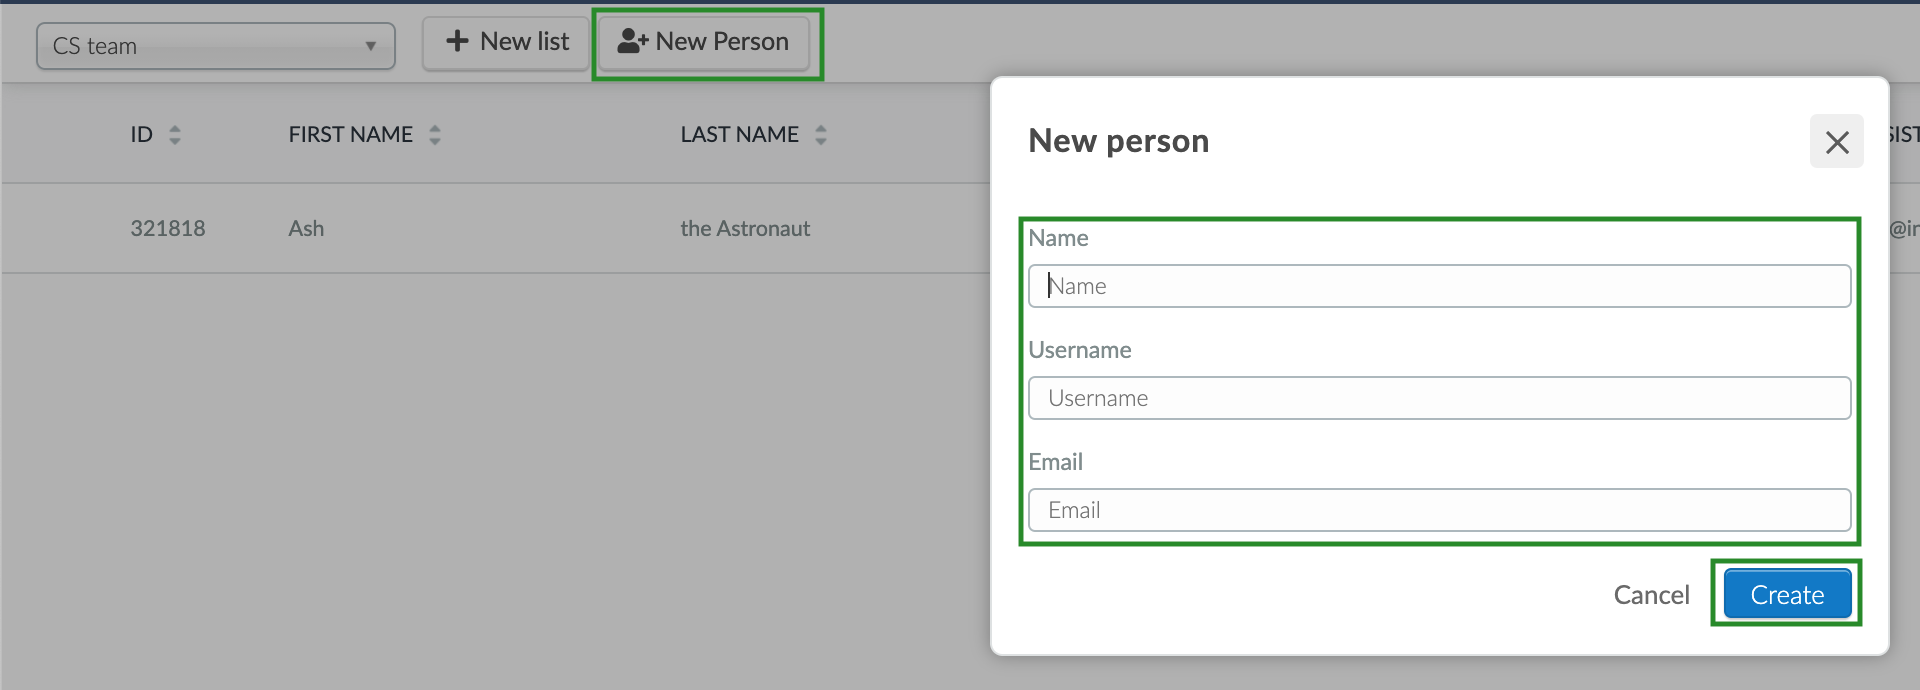 Screenshot of steps to add a new person to a list